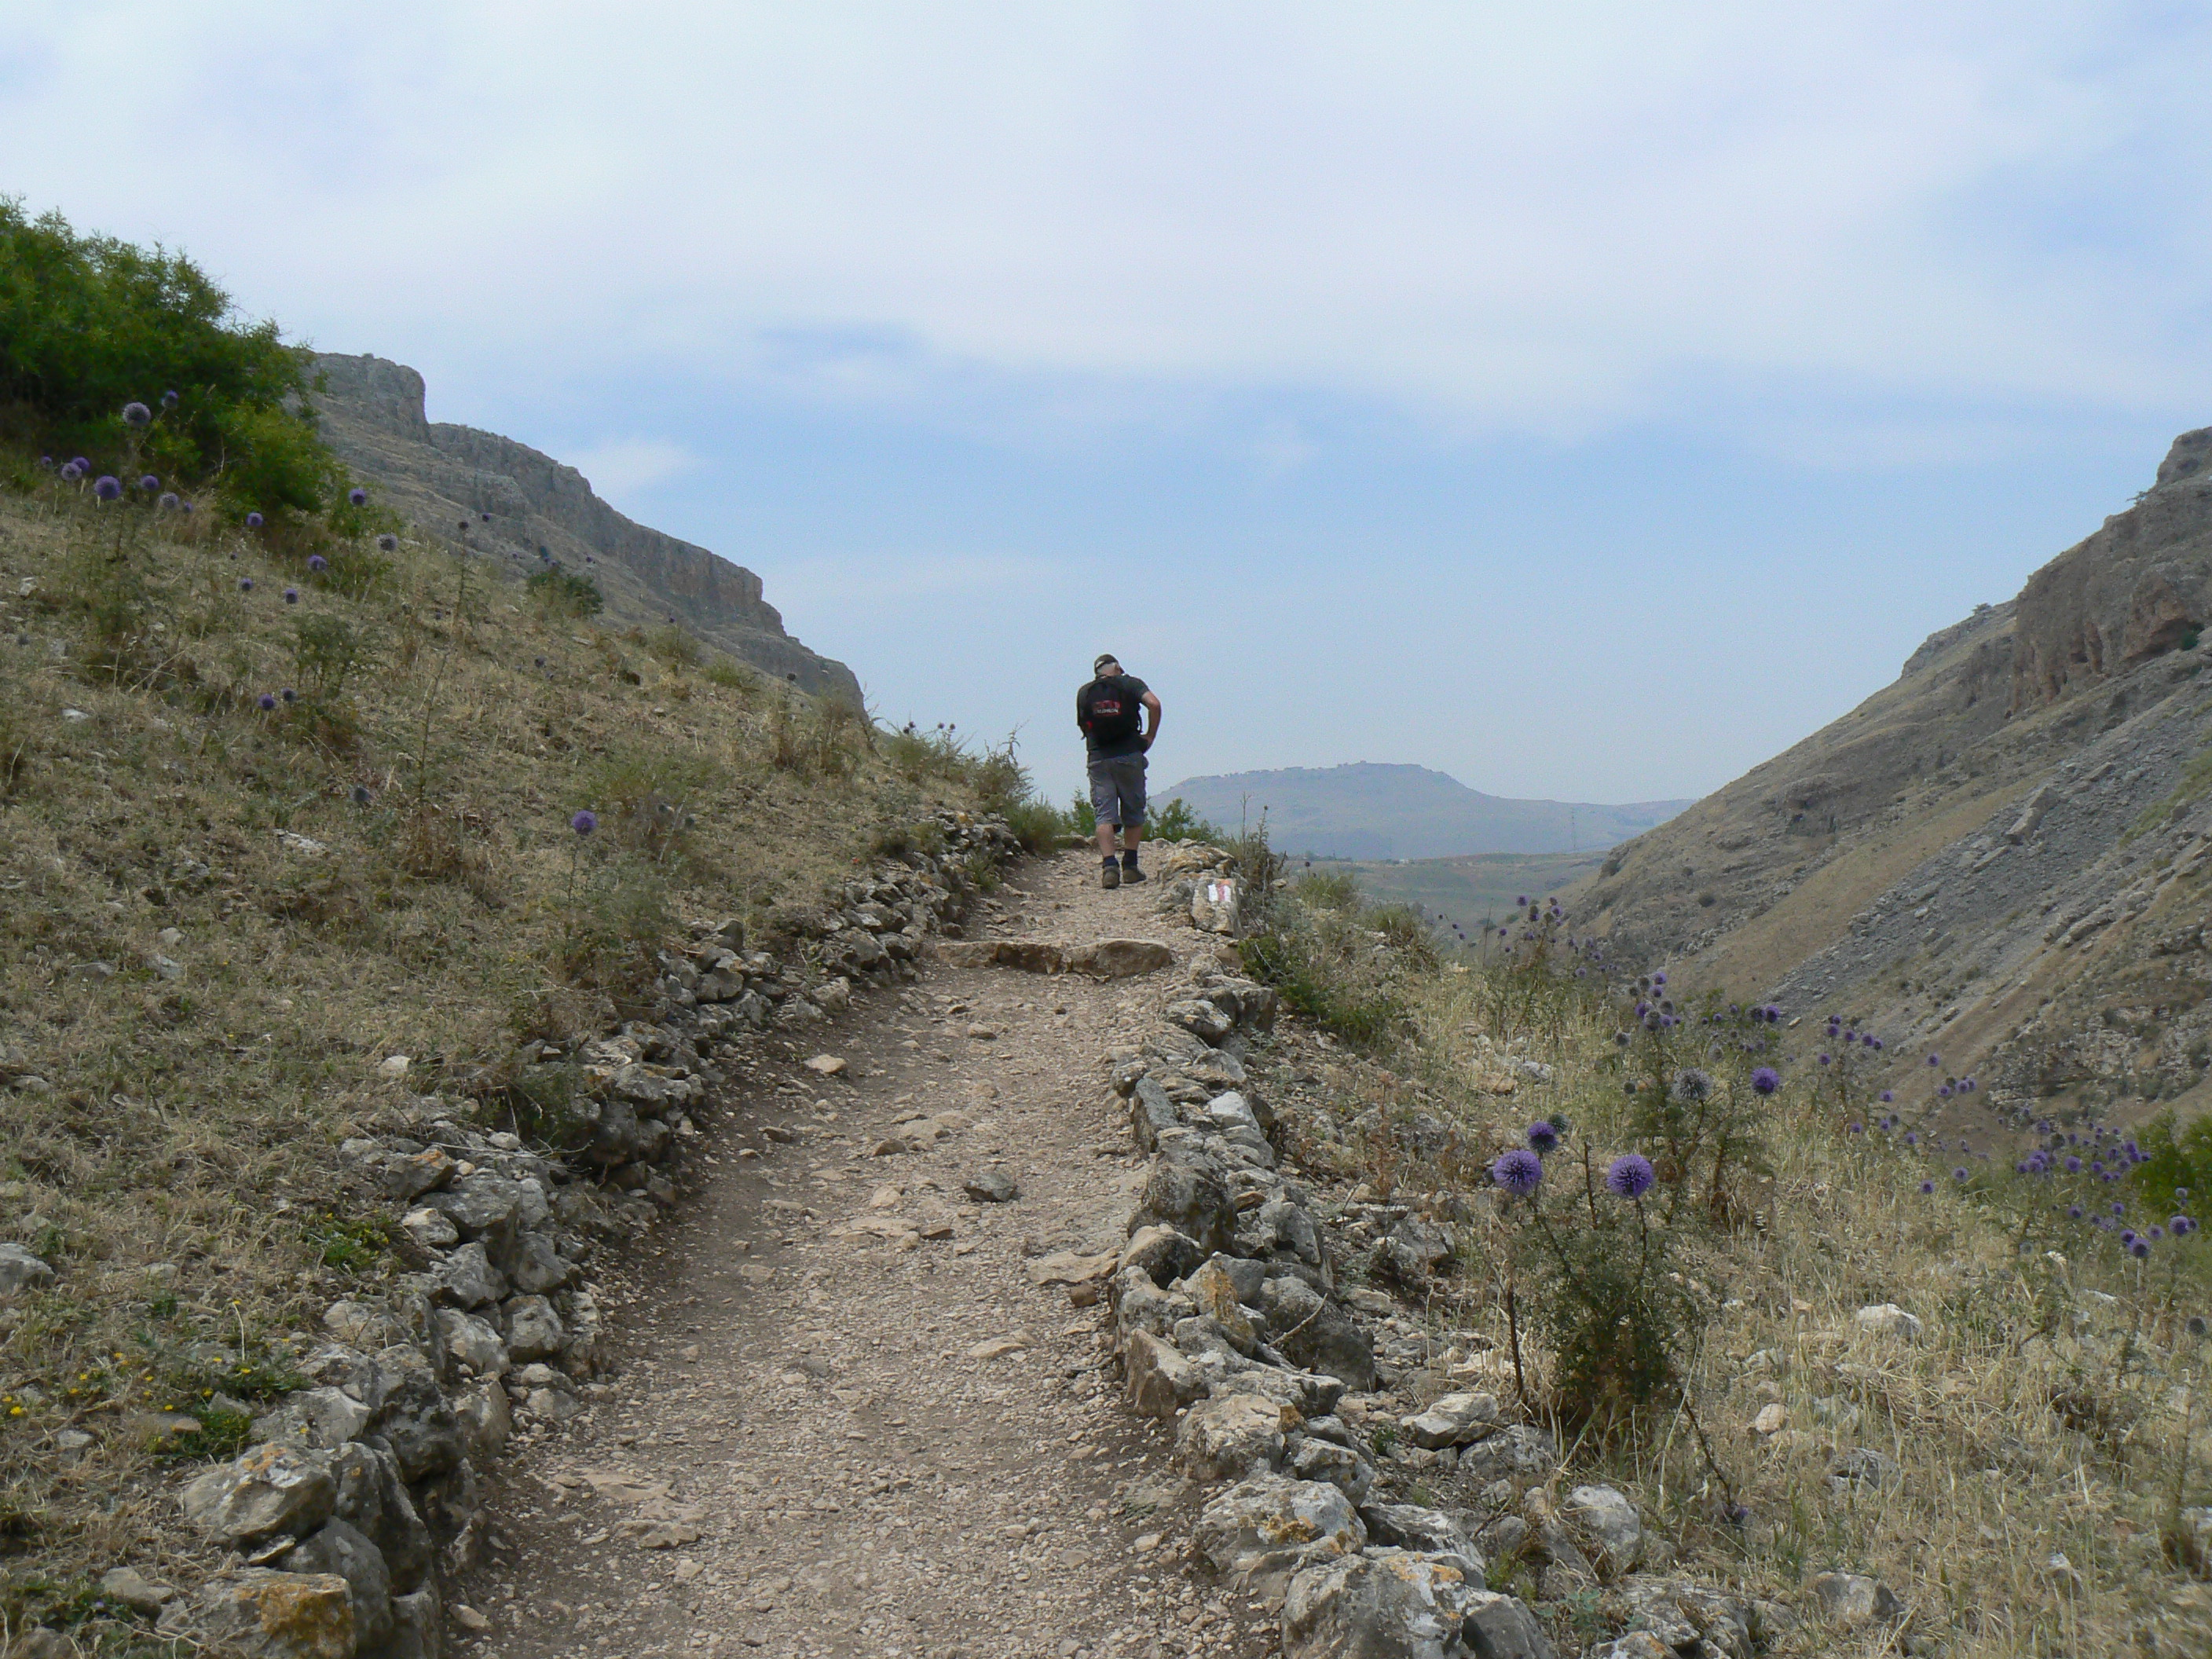 The Israel Hiking Trail